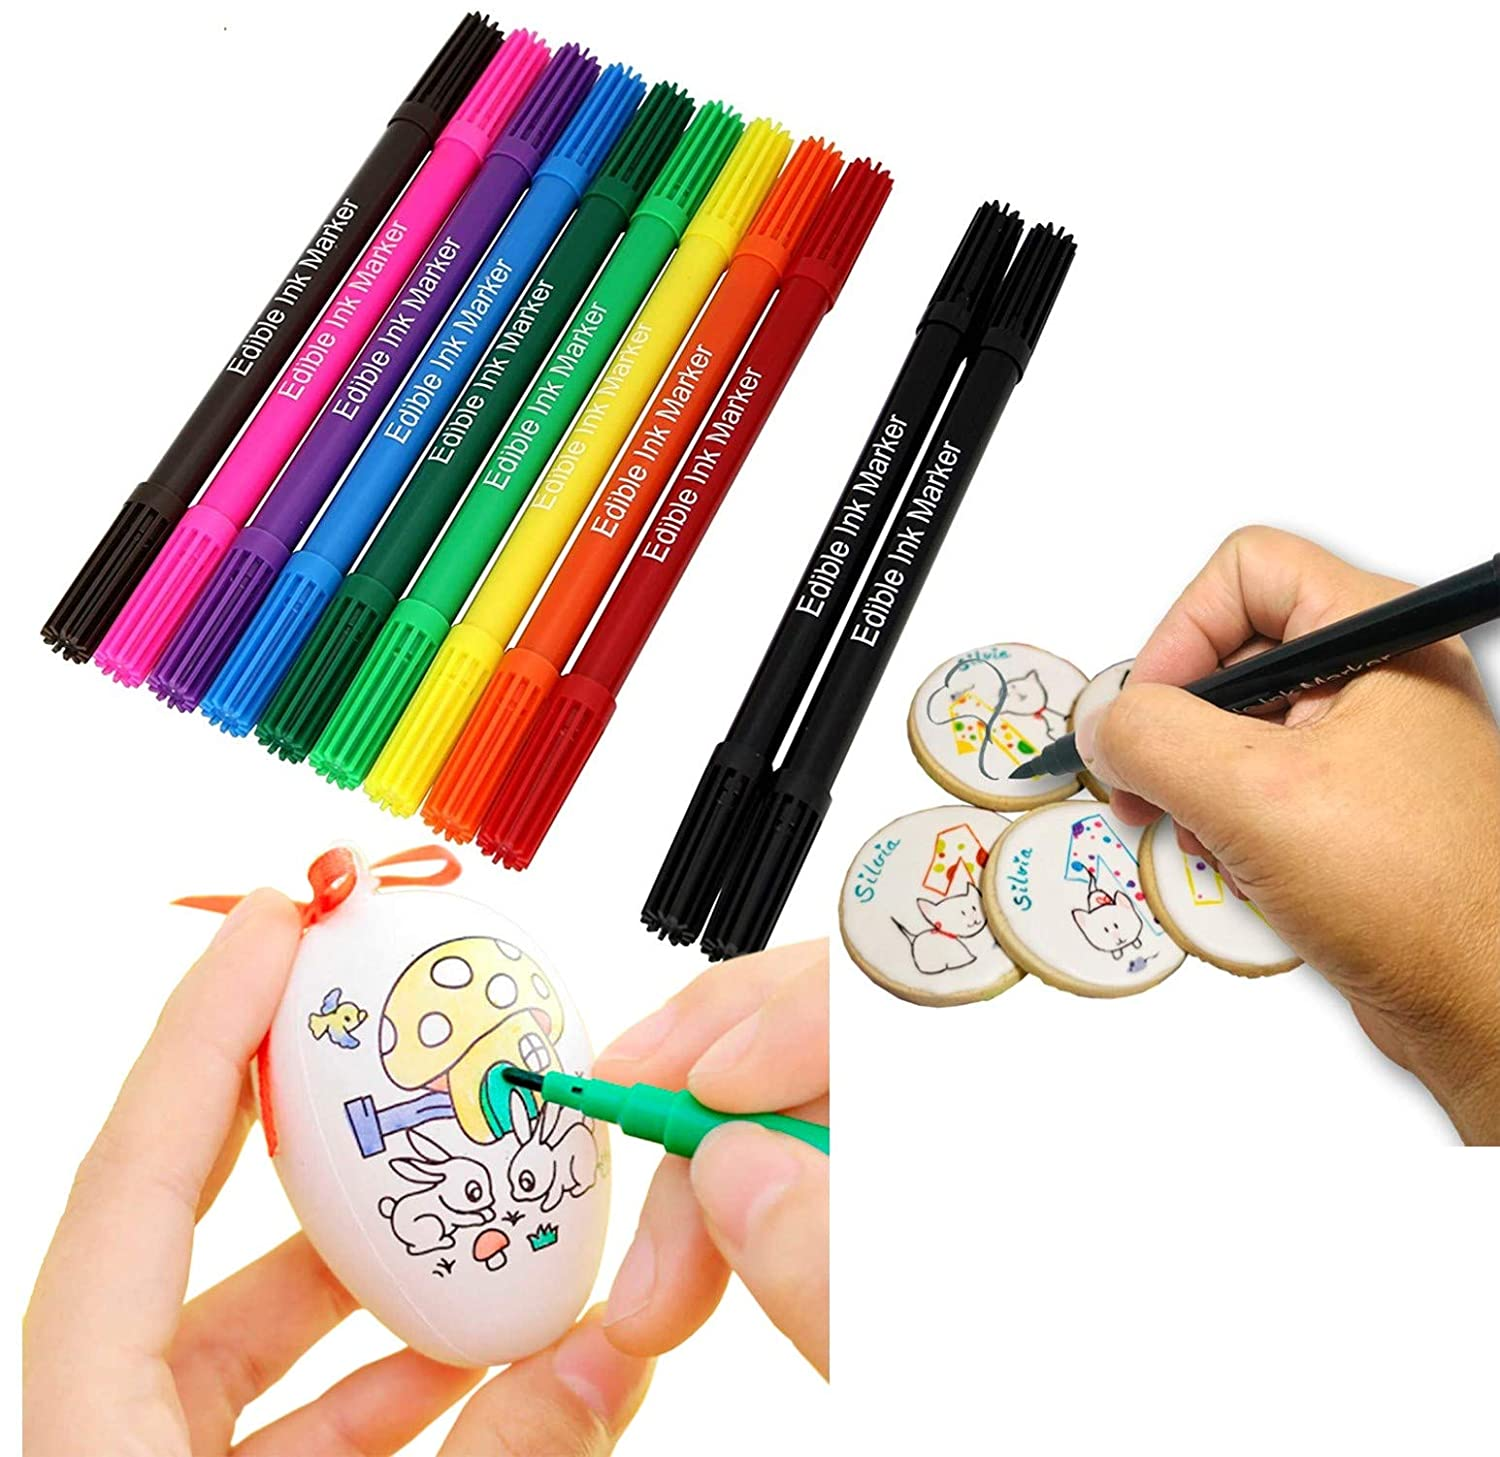 Food coloring Markers Pen set for cooking decorating, 11 Vibrant and deep food rainbow colors perfect for creative Family bakery projects /Cookies supplies kit / Includes 2 black